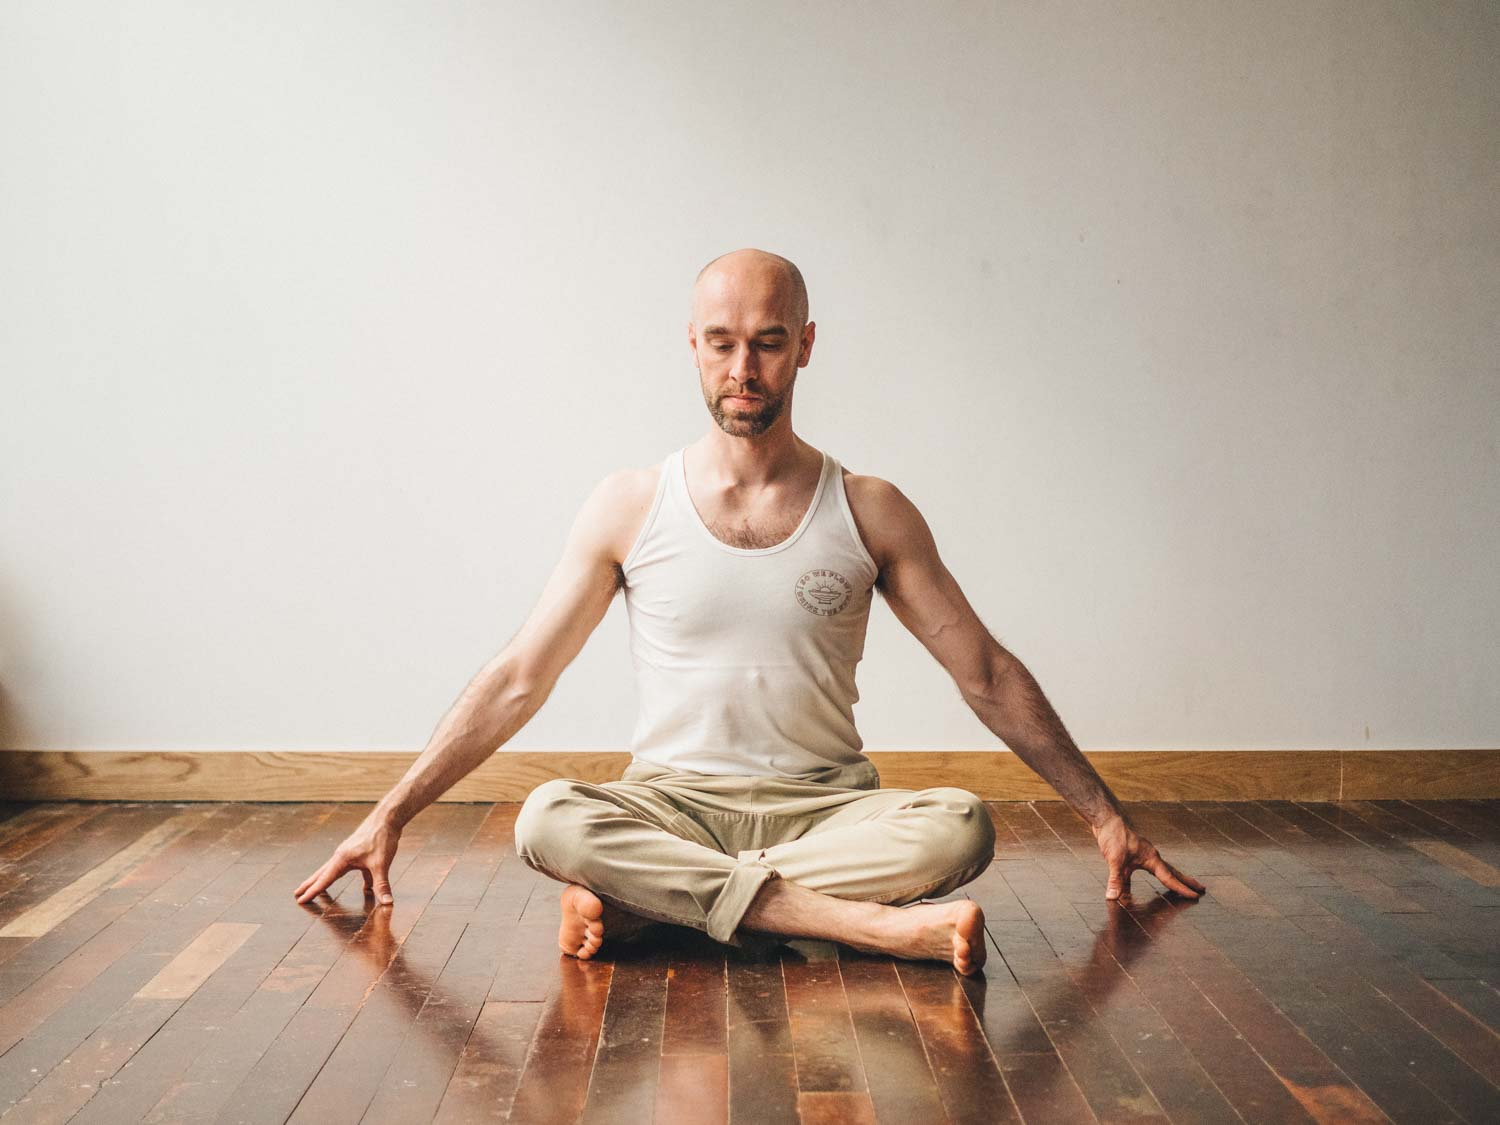 Man doing fire log pose or Agnistambhasana variation in yoga studio